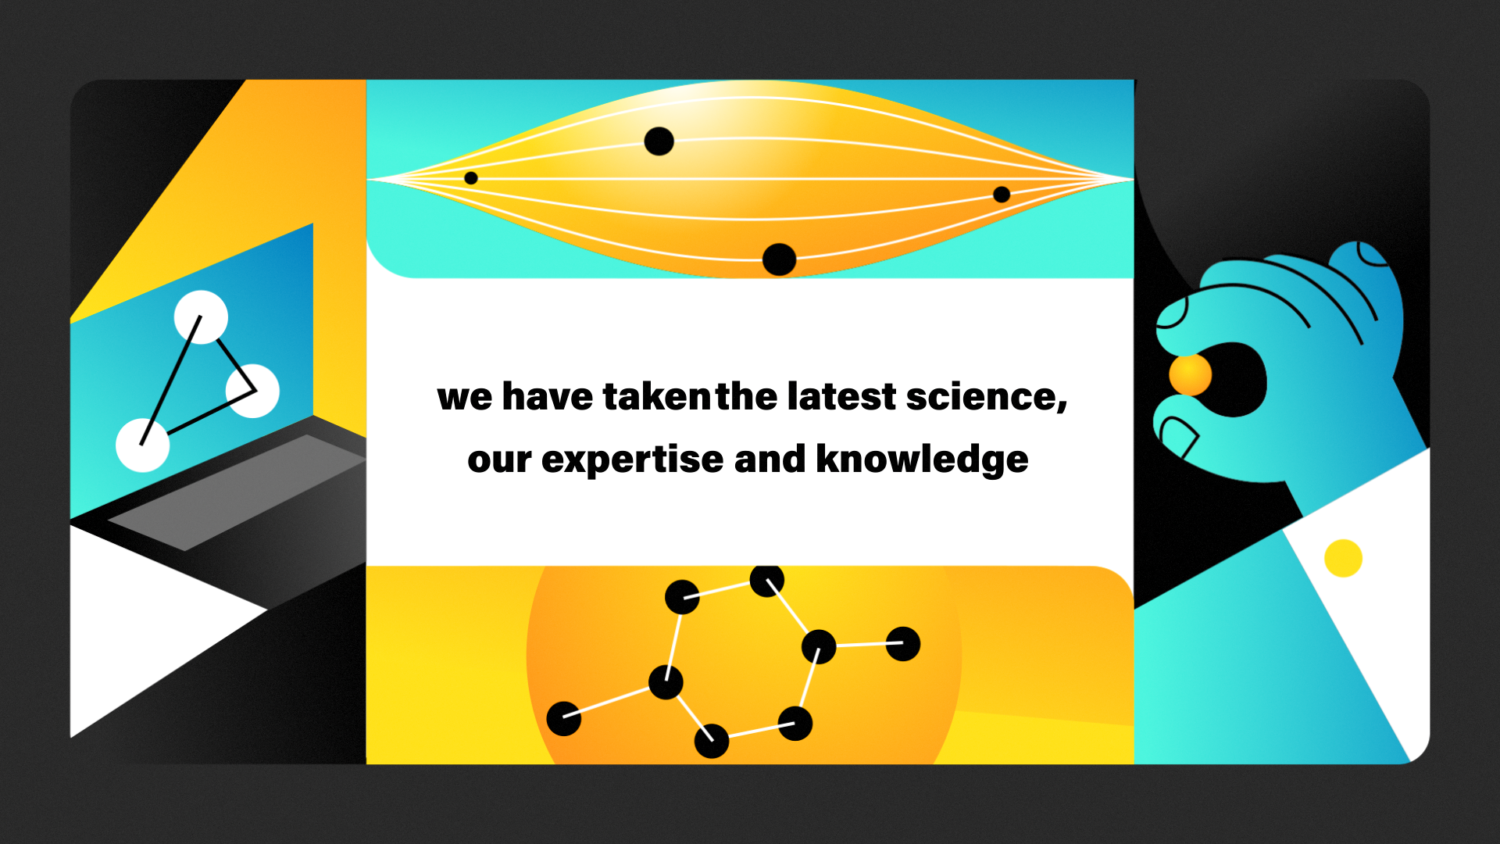 Science, expertise and knowledge